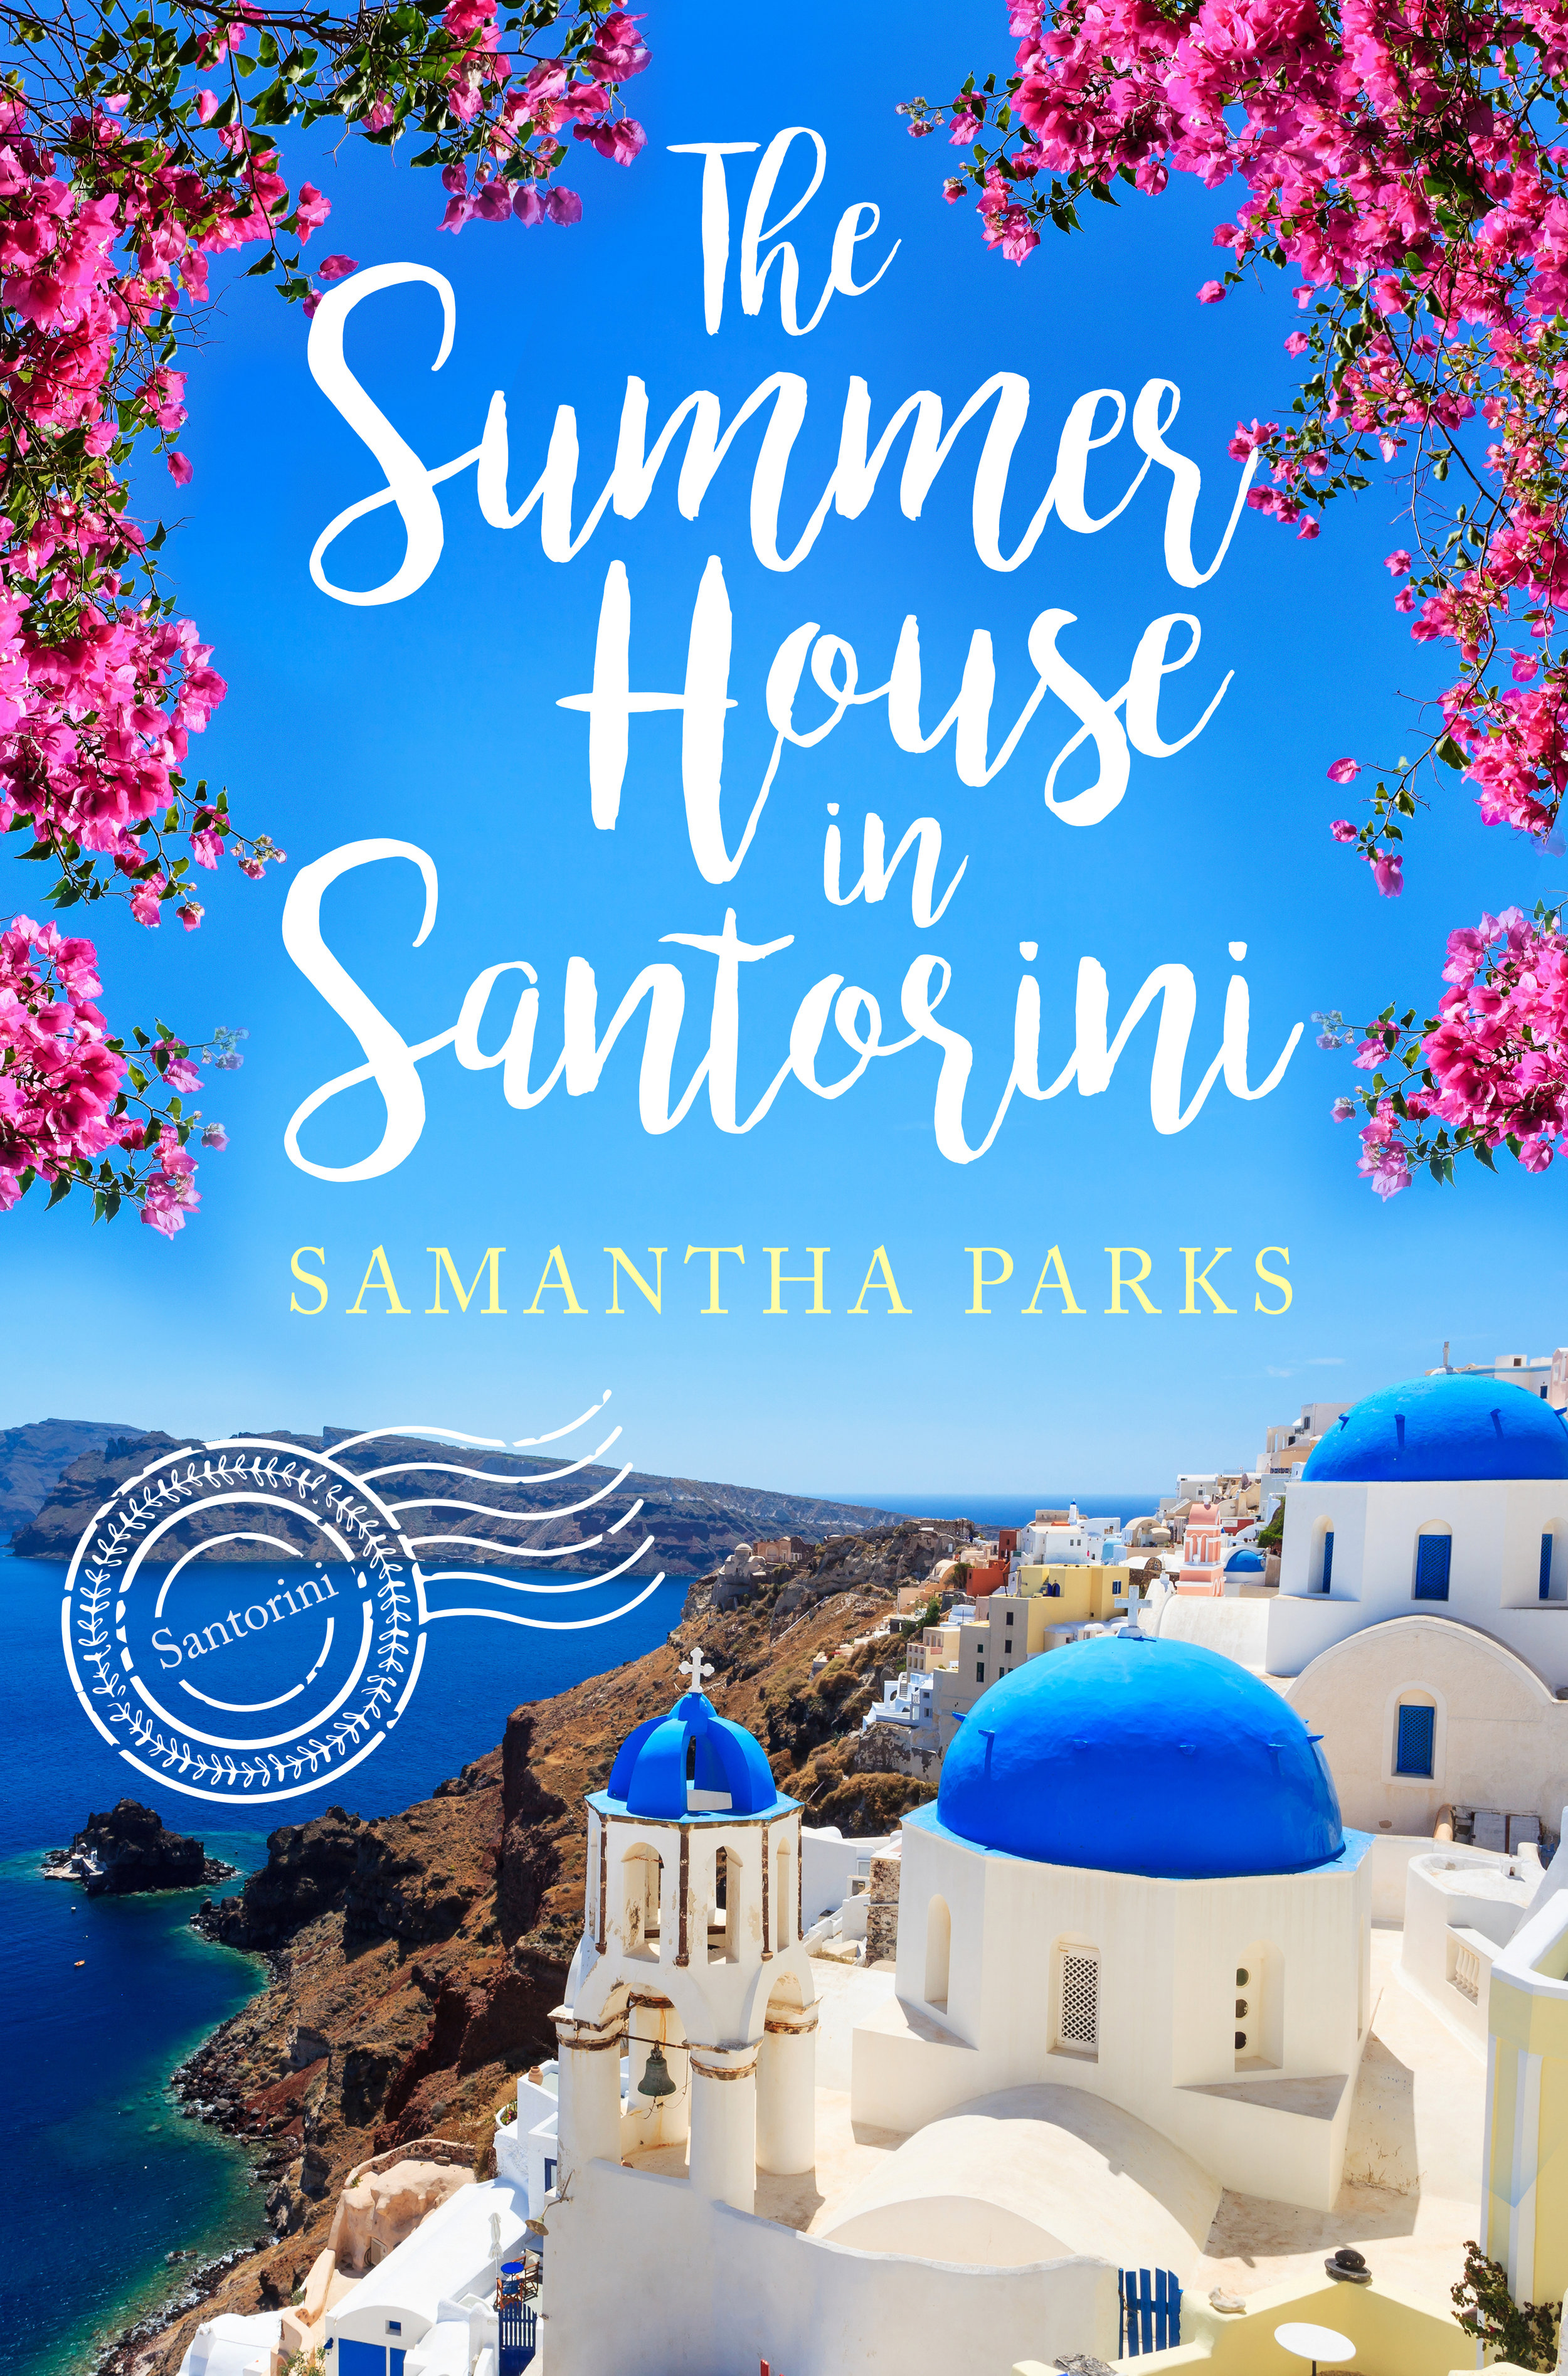 The Summerhouse in Santoriniv2.jpg